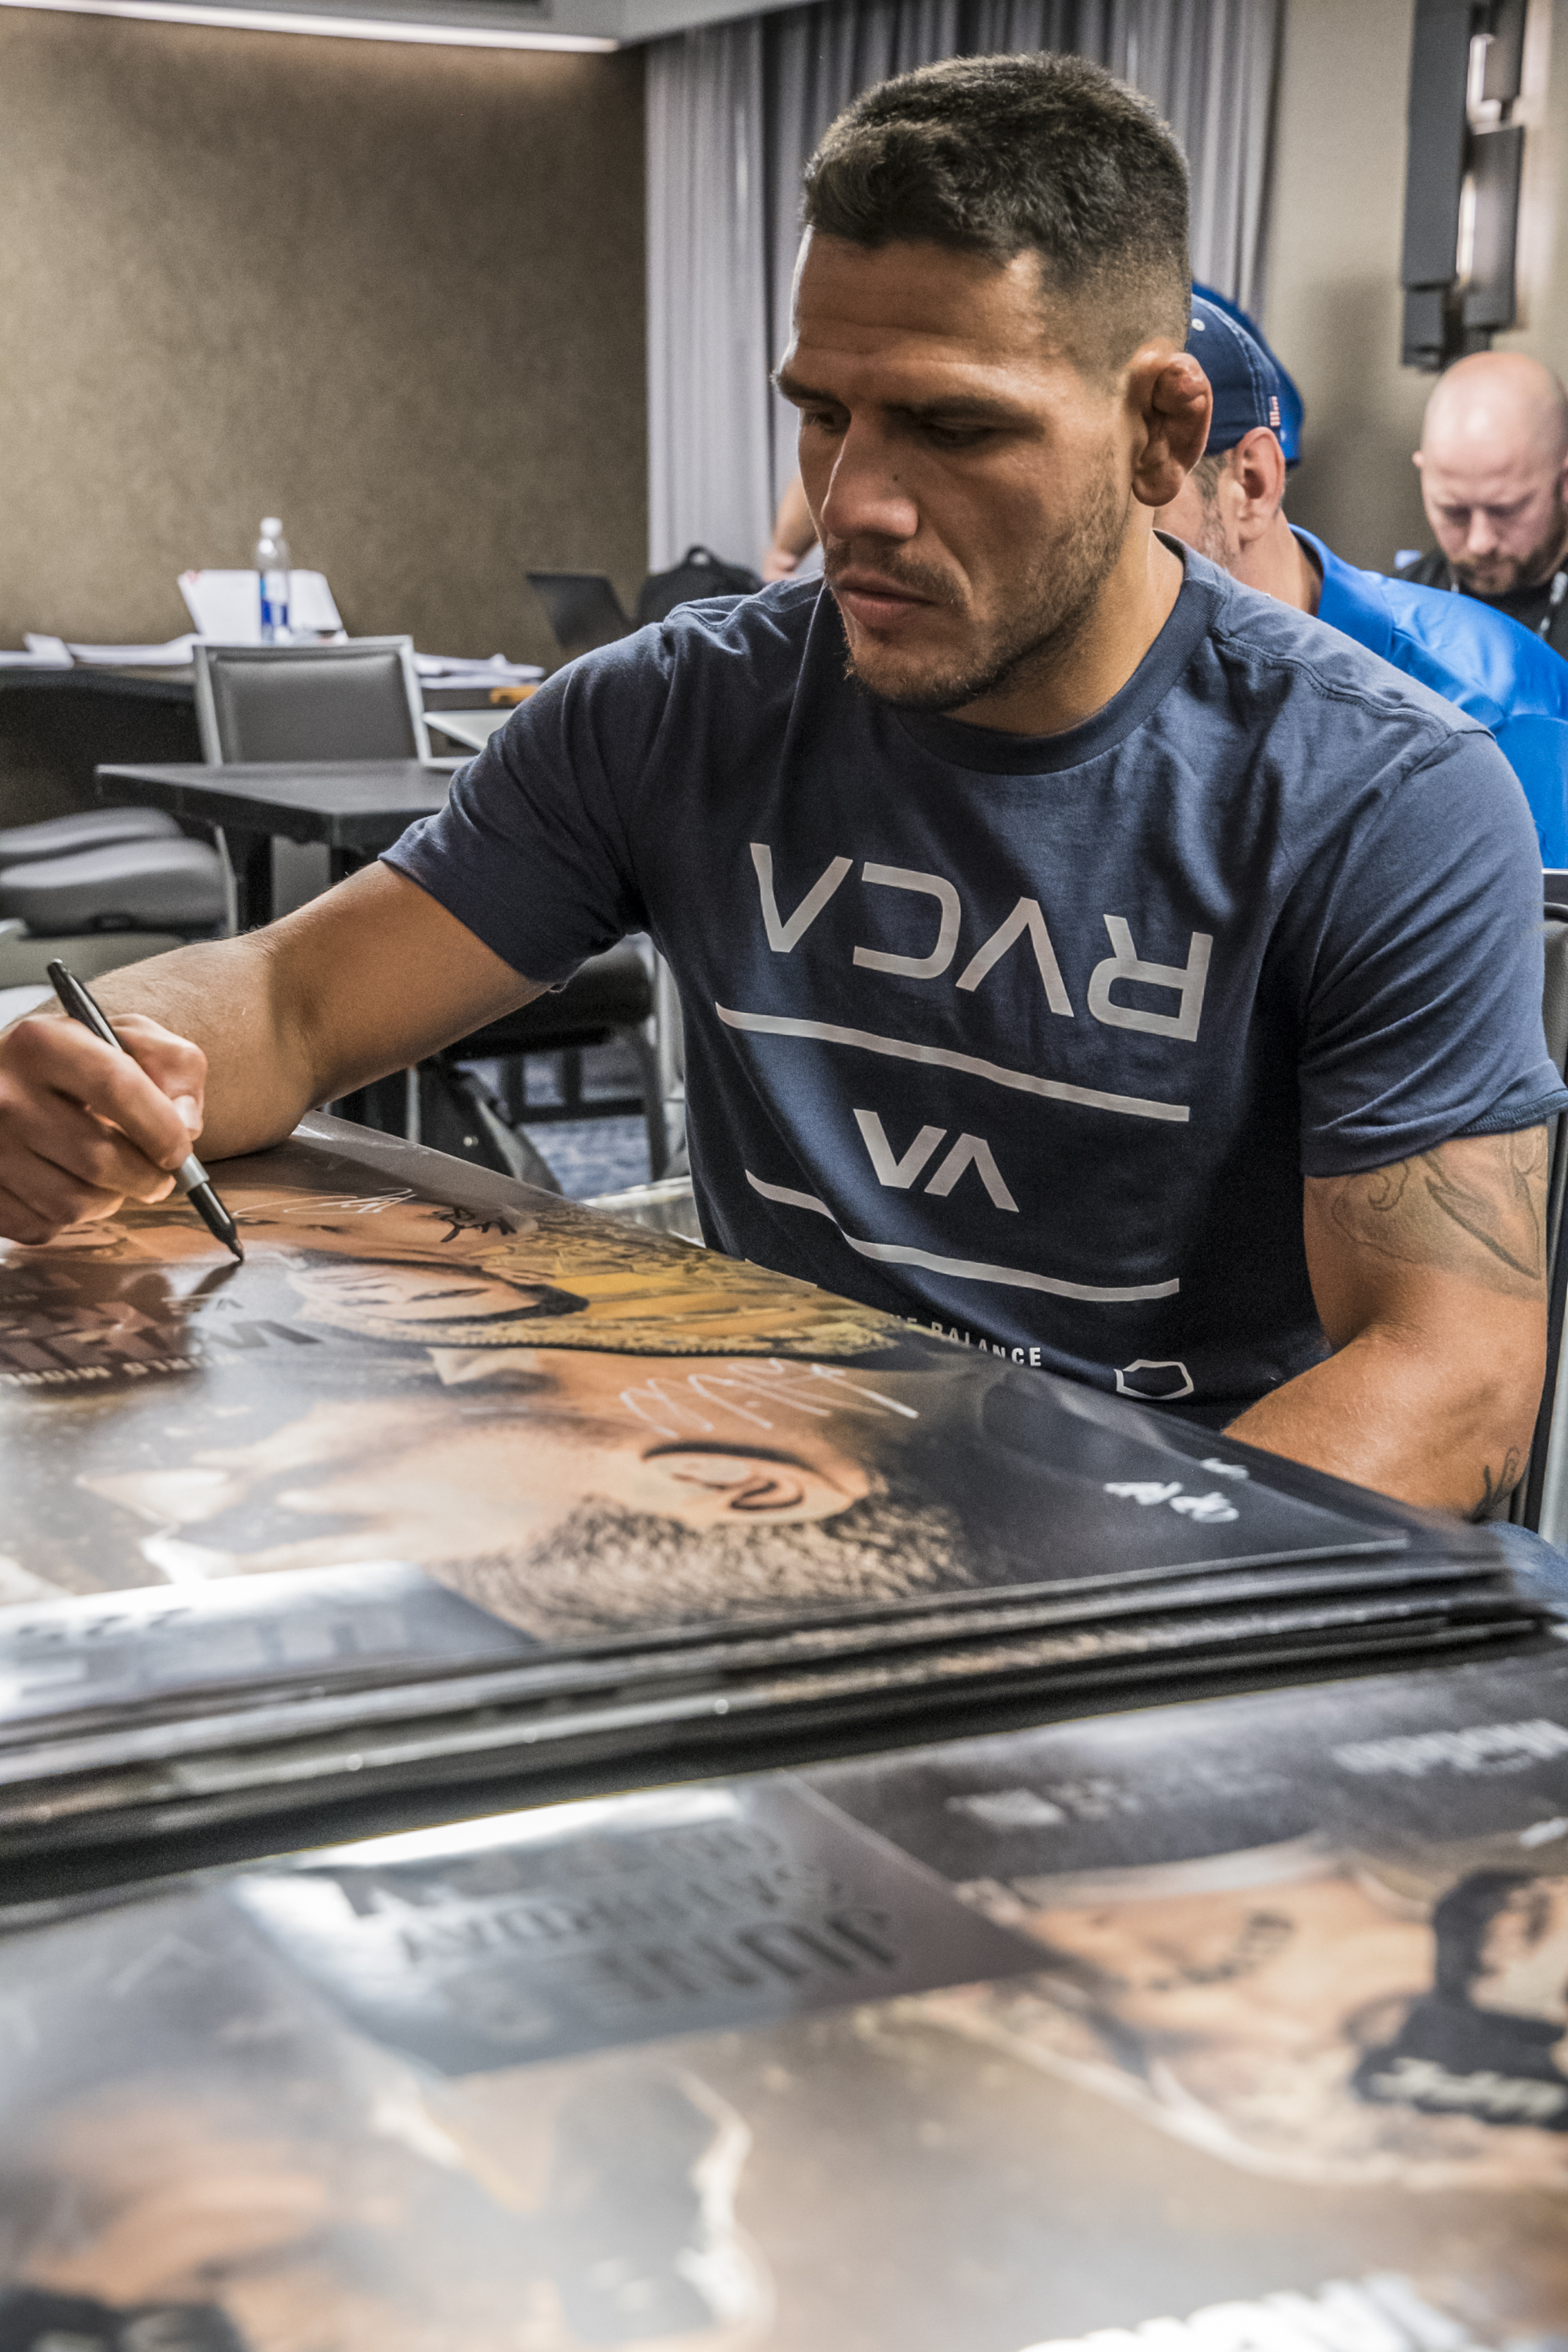 RDA at UFC 225 check-ins (Photo by Juan Cardenas/Zuffa LLC)